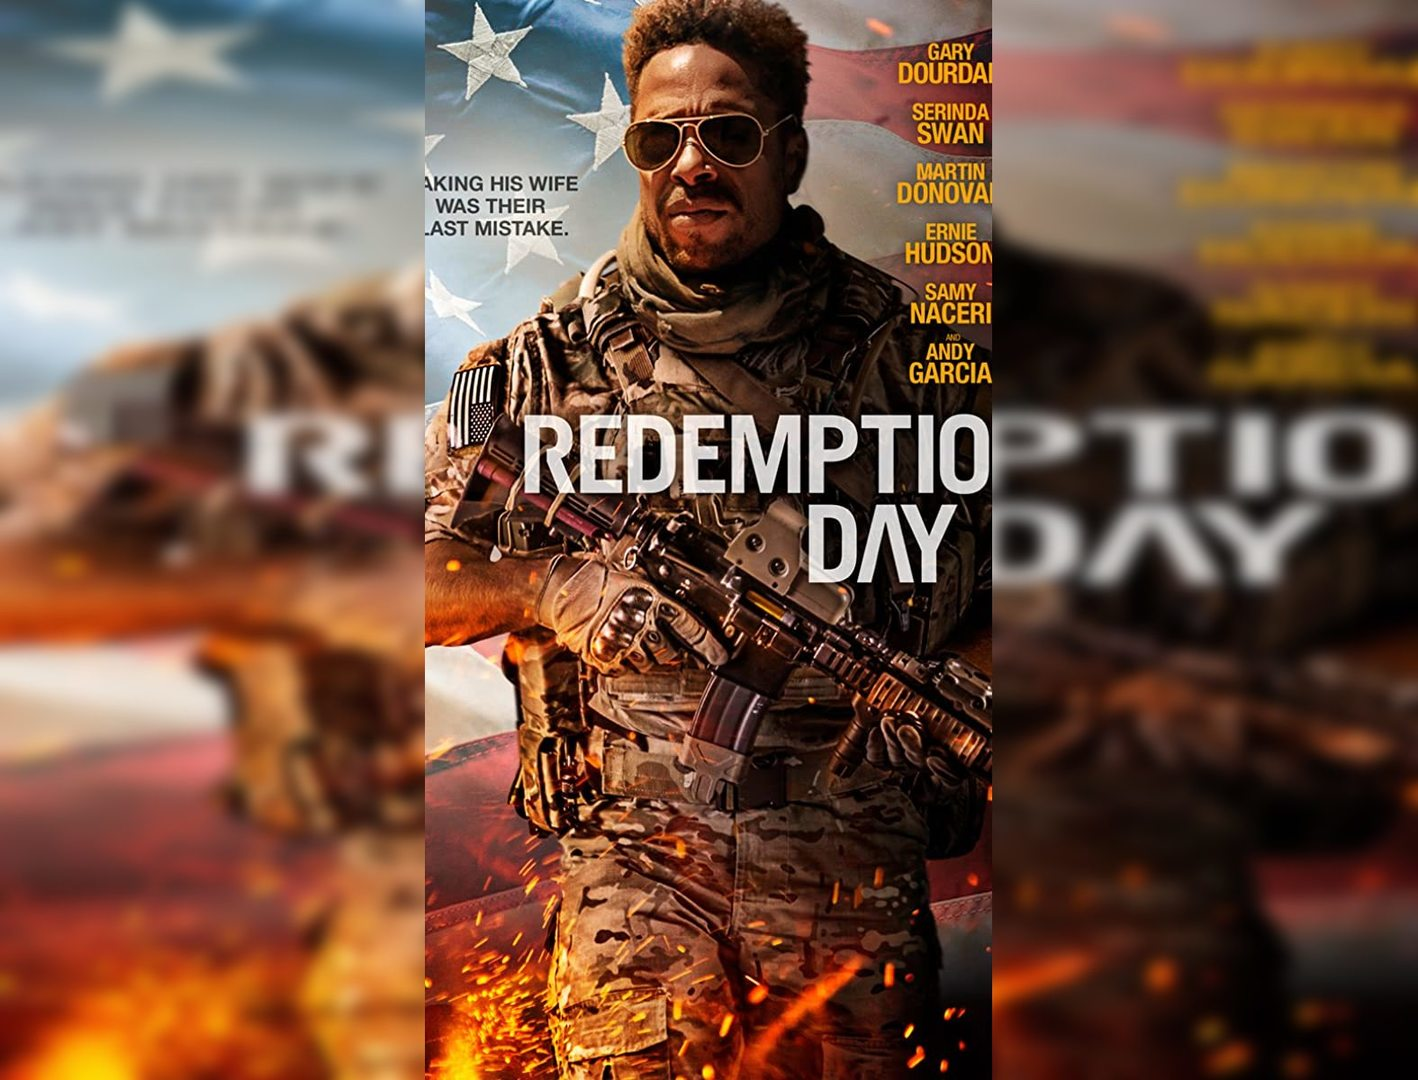 Redemption Day Review:  There's Not a Delight to be Found in This Superficial Action Thriller (Rating: **)